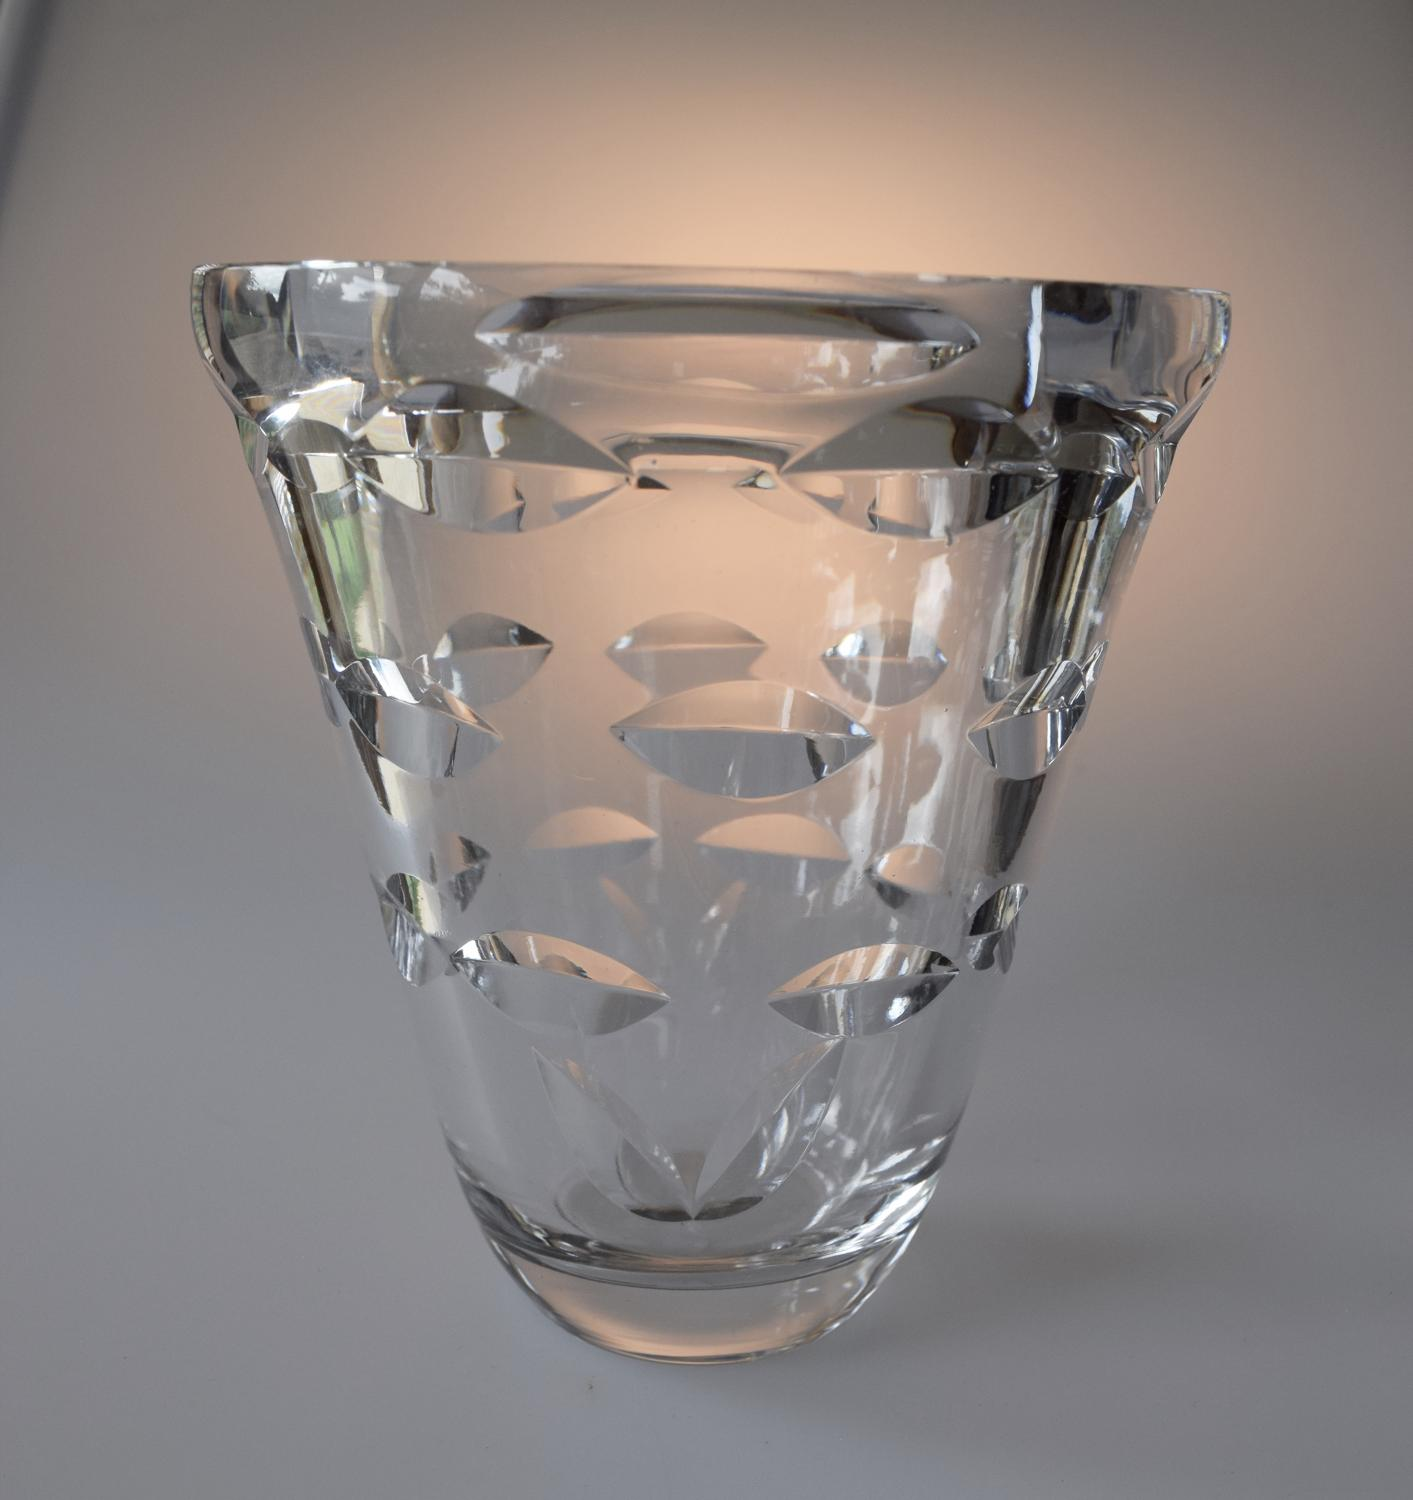 Slovinian moulded glass vase.